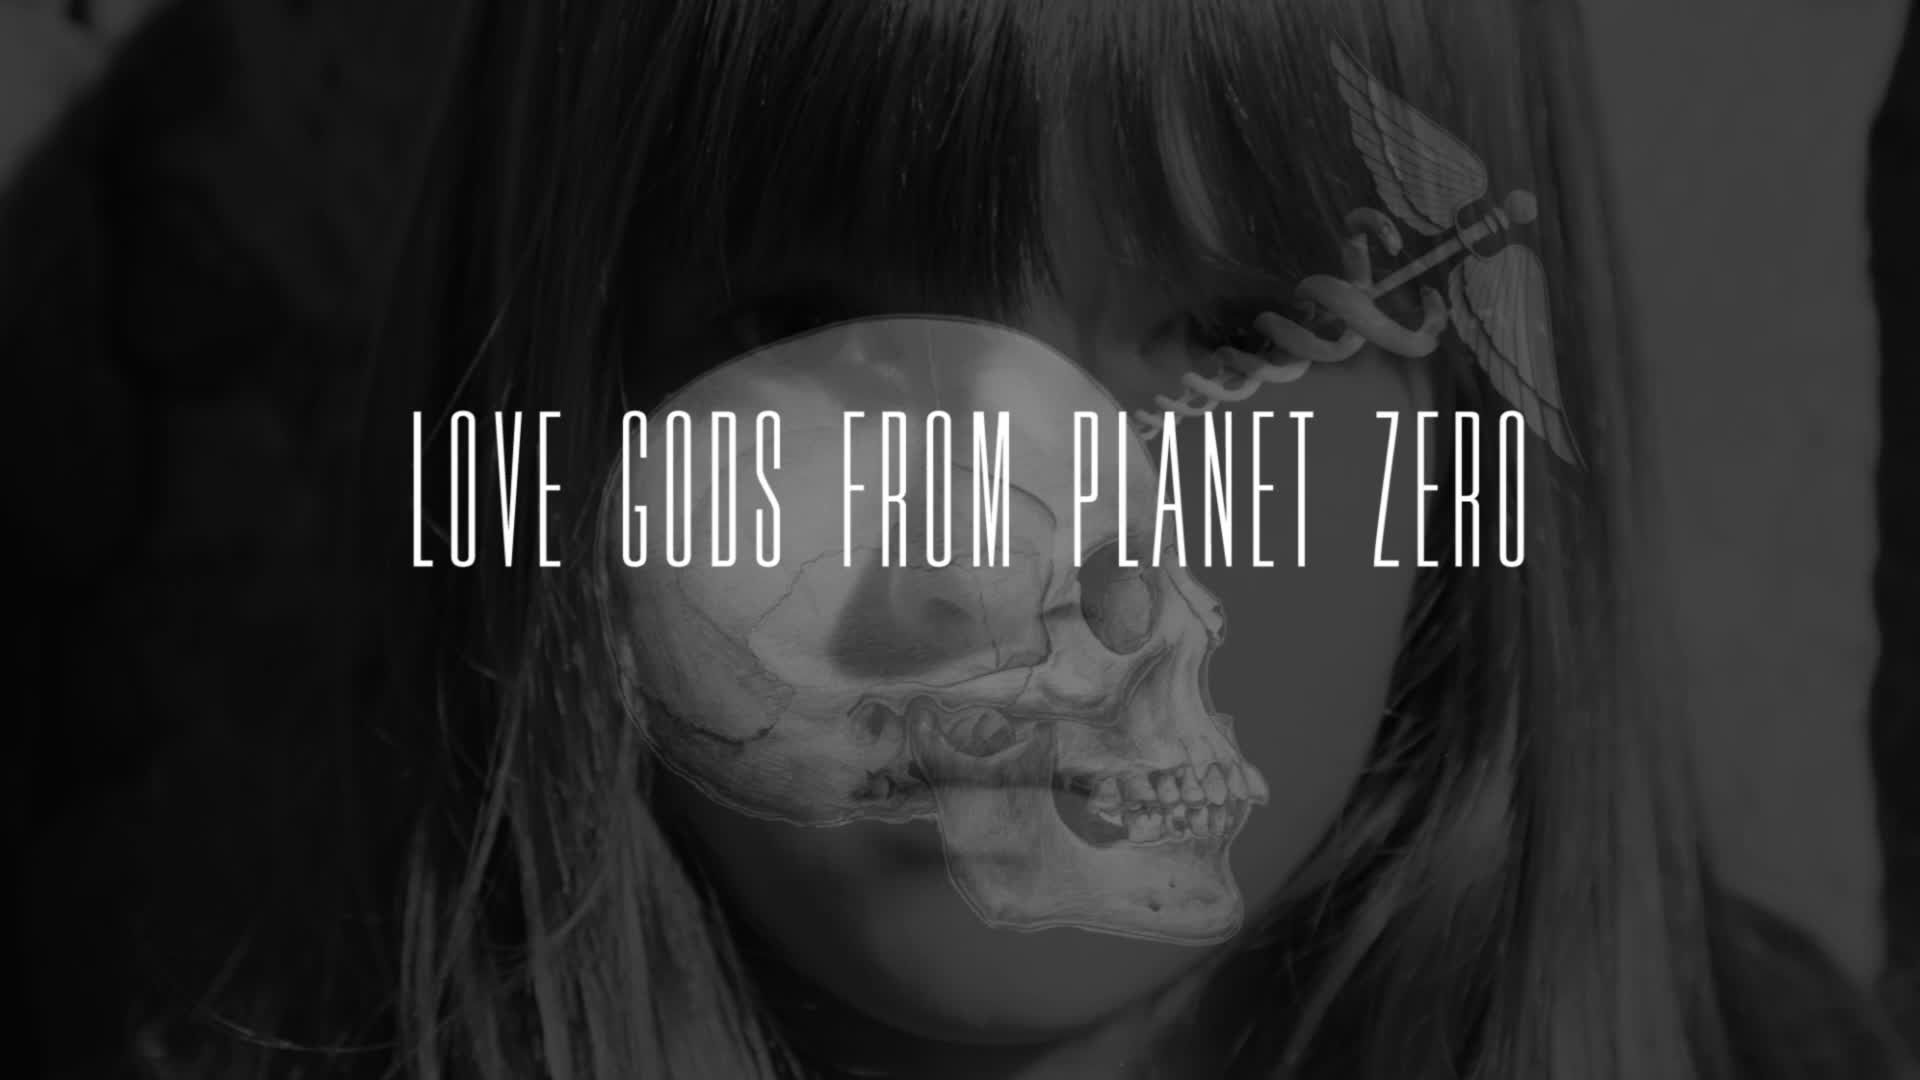 Love Gods from Planet Zero hd mp4 download